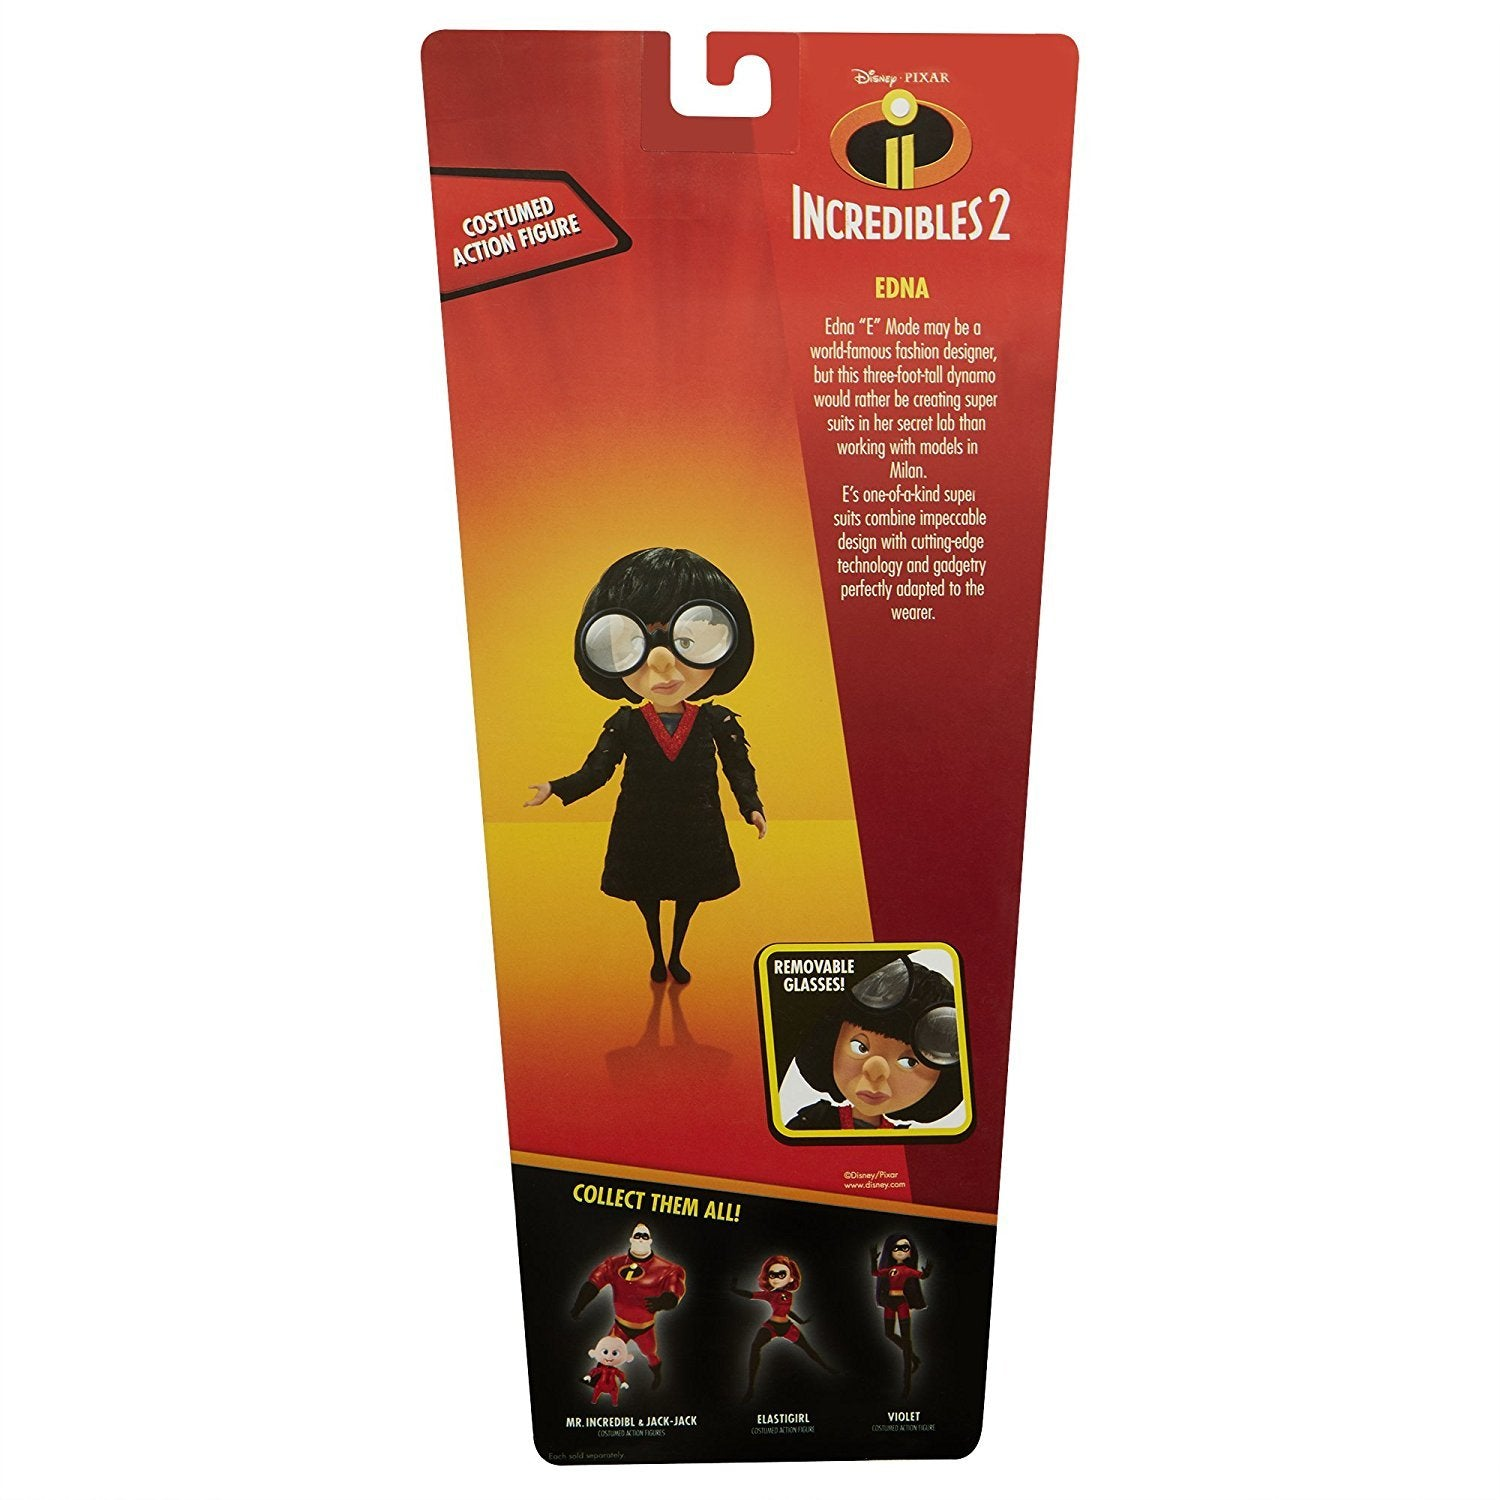 The Incredibles 2 Edna Deluxe Costume And Glasses Action Figure Quest Toys